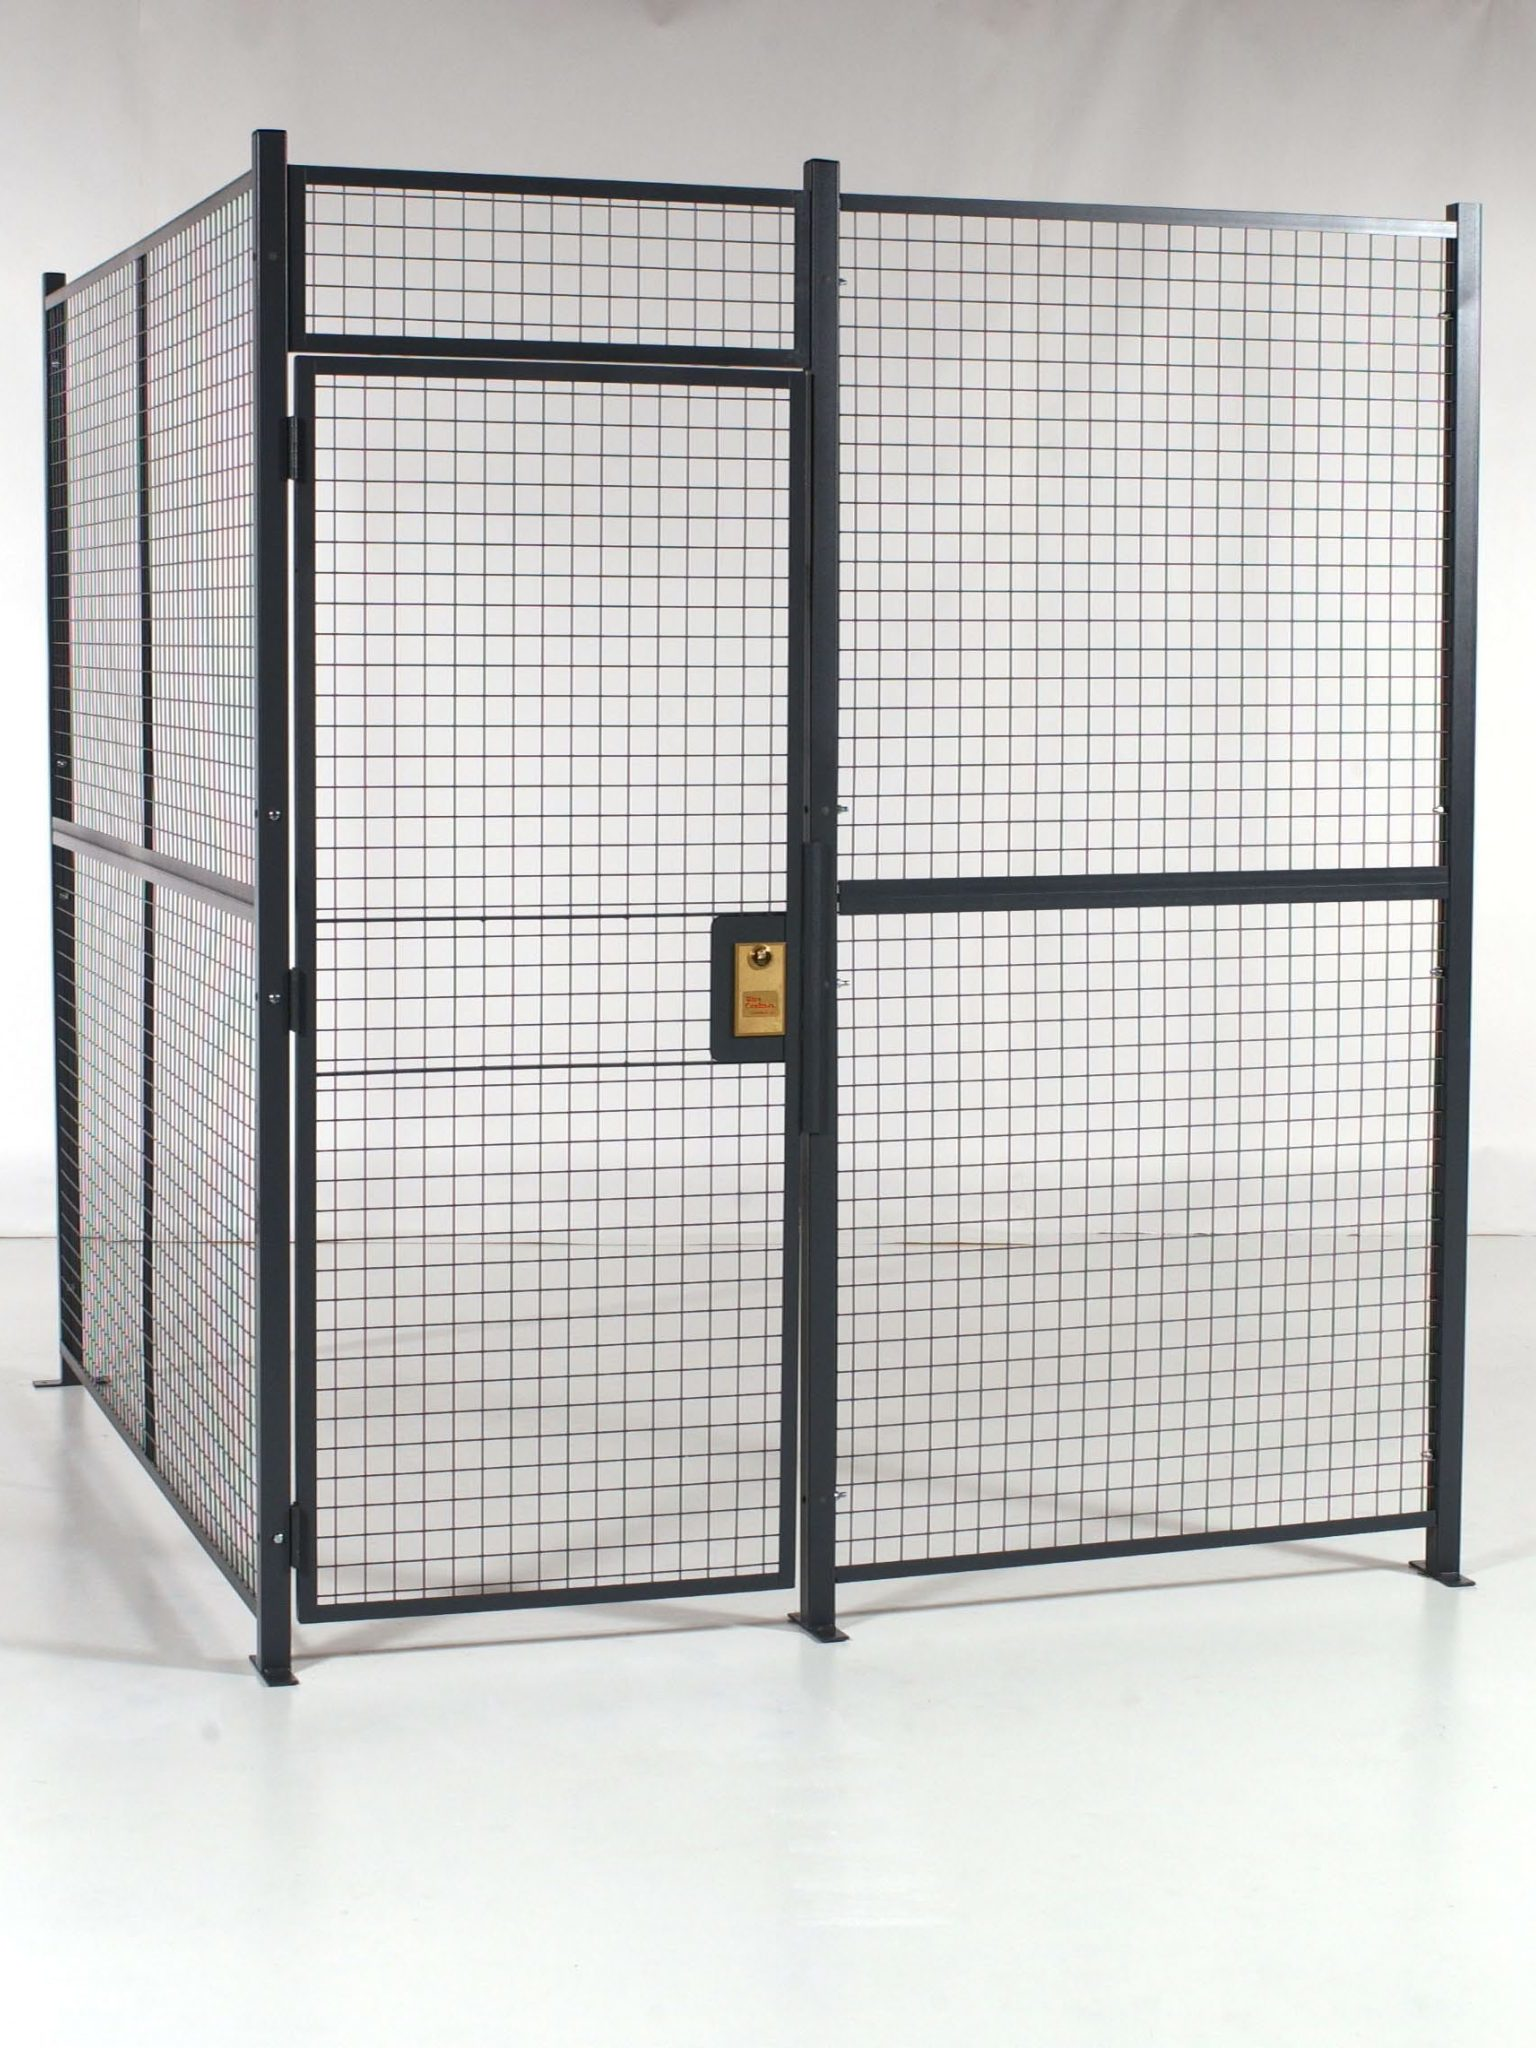 warehouse cage storage